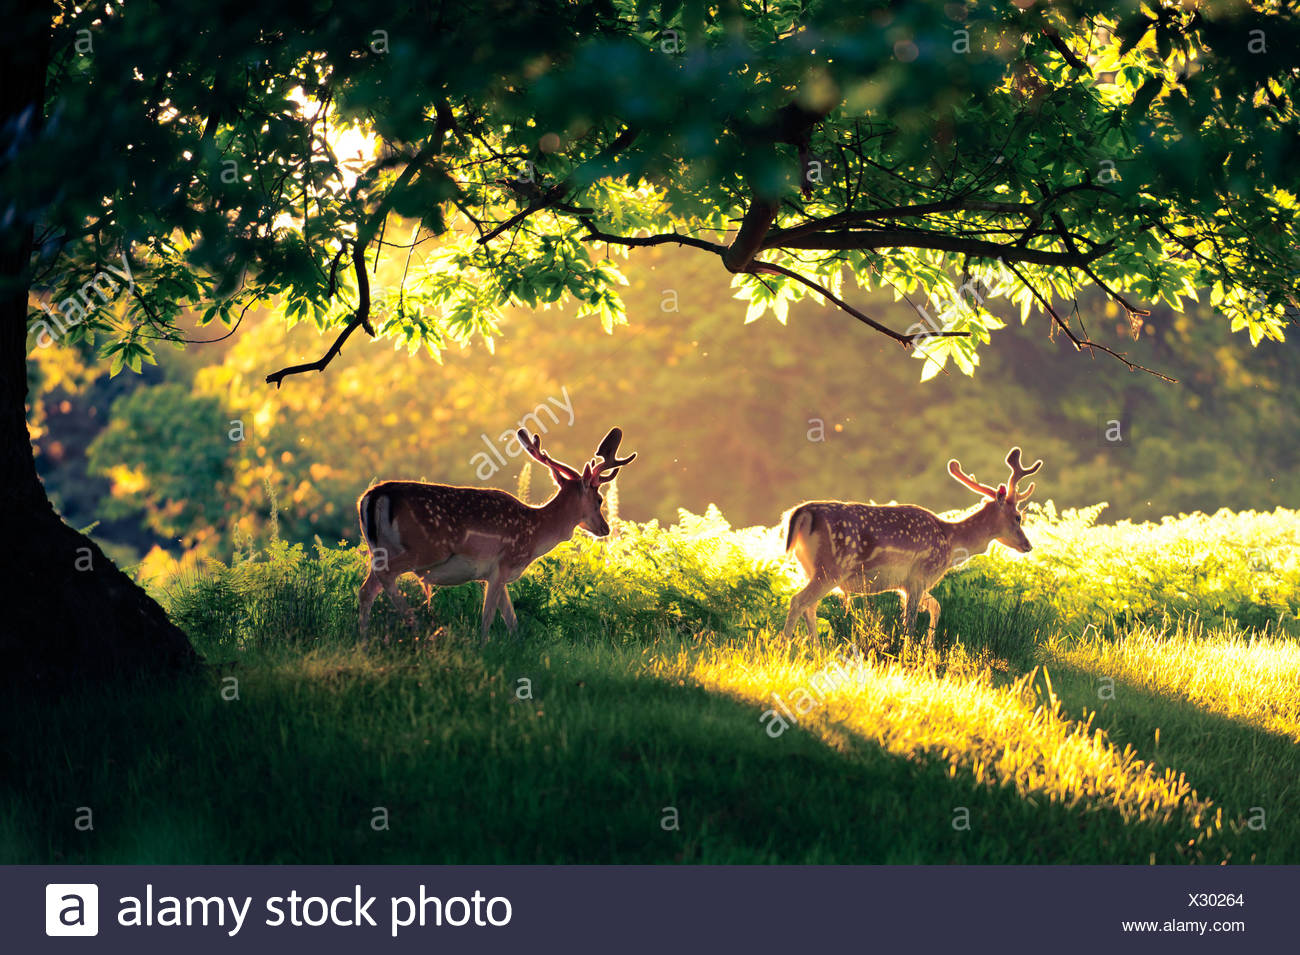 Two deer in the park - Stock Image